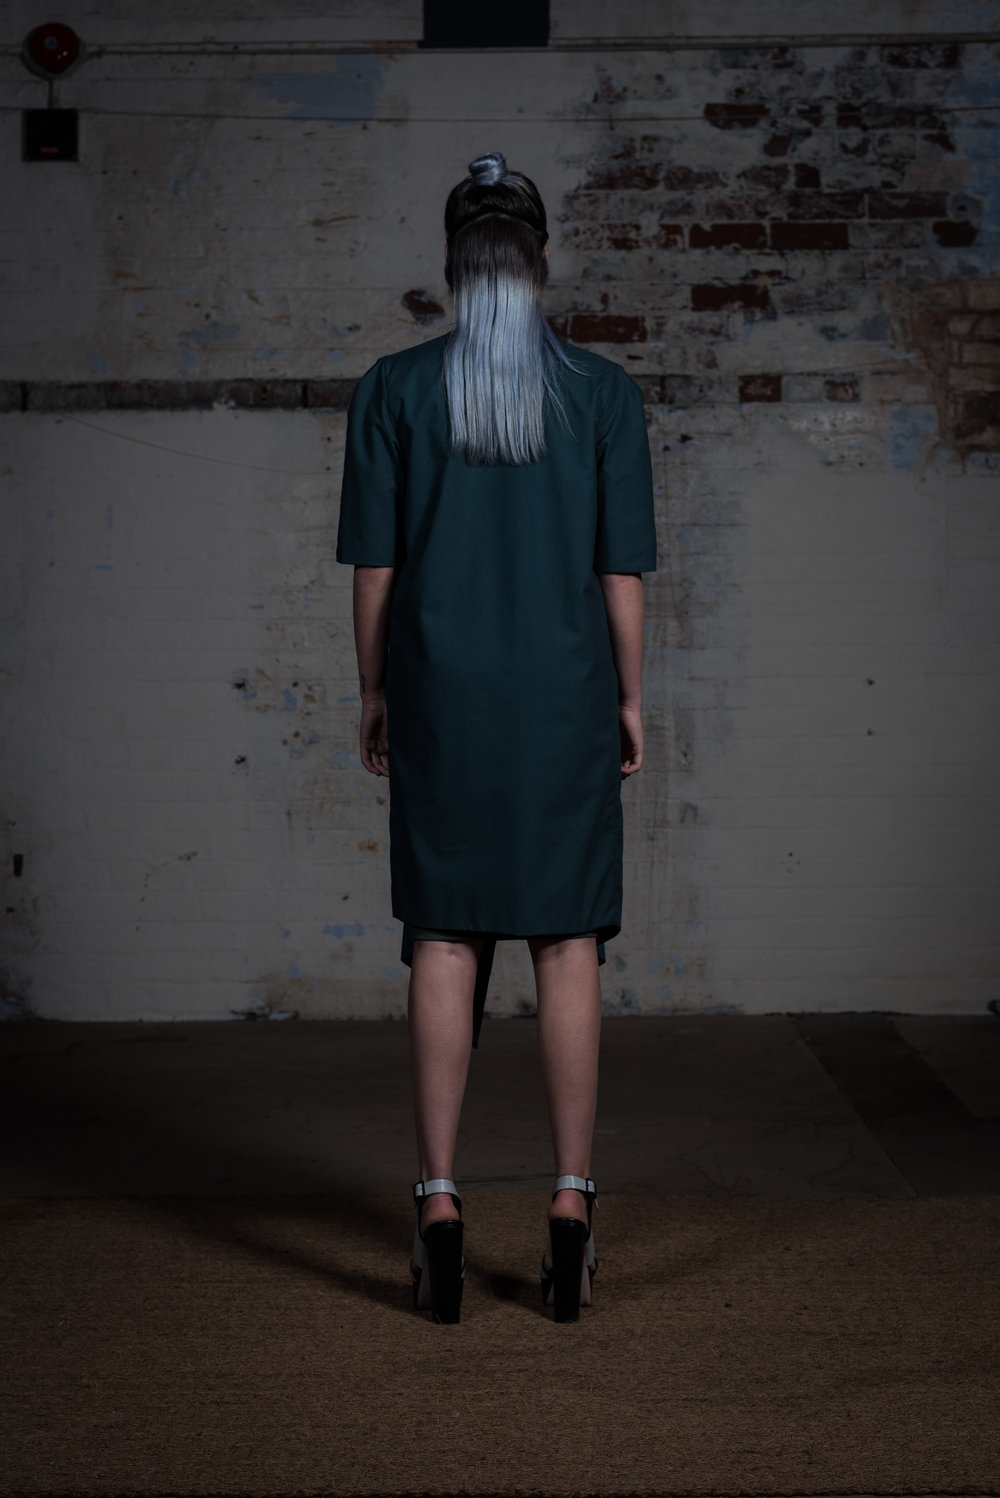 zaramia-ava-zaramiaava-leeds-fashion-designer-ethical-sustainable-teal-mai-jacket-dress-versatile-drape-skirt-grey-yuko-cowl-dress-styling-location-womenswear-models-photoshoot-6